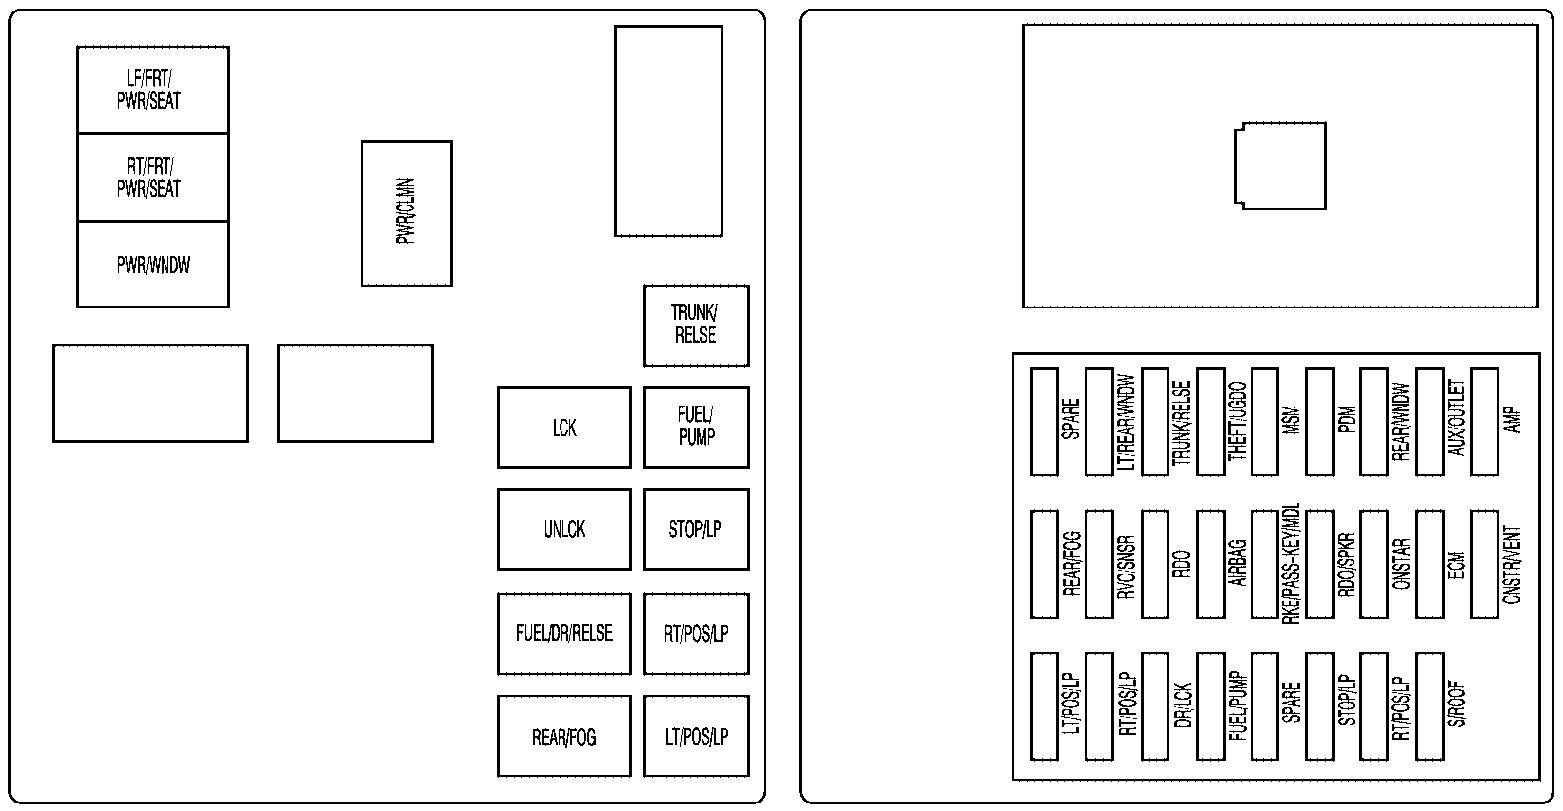 Cadillac CTS (2009) – fuse box diagram - Carknowledge.info 2005 Cadillac Cts Rear Fuse Box S Carknowledge.info